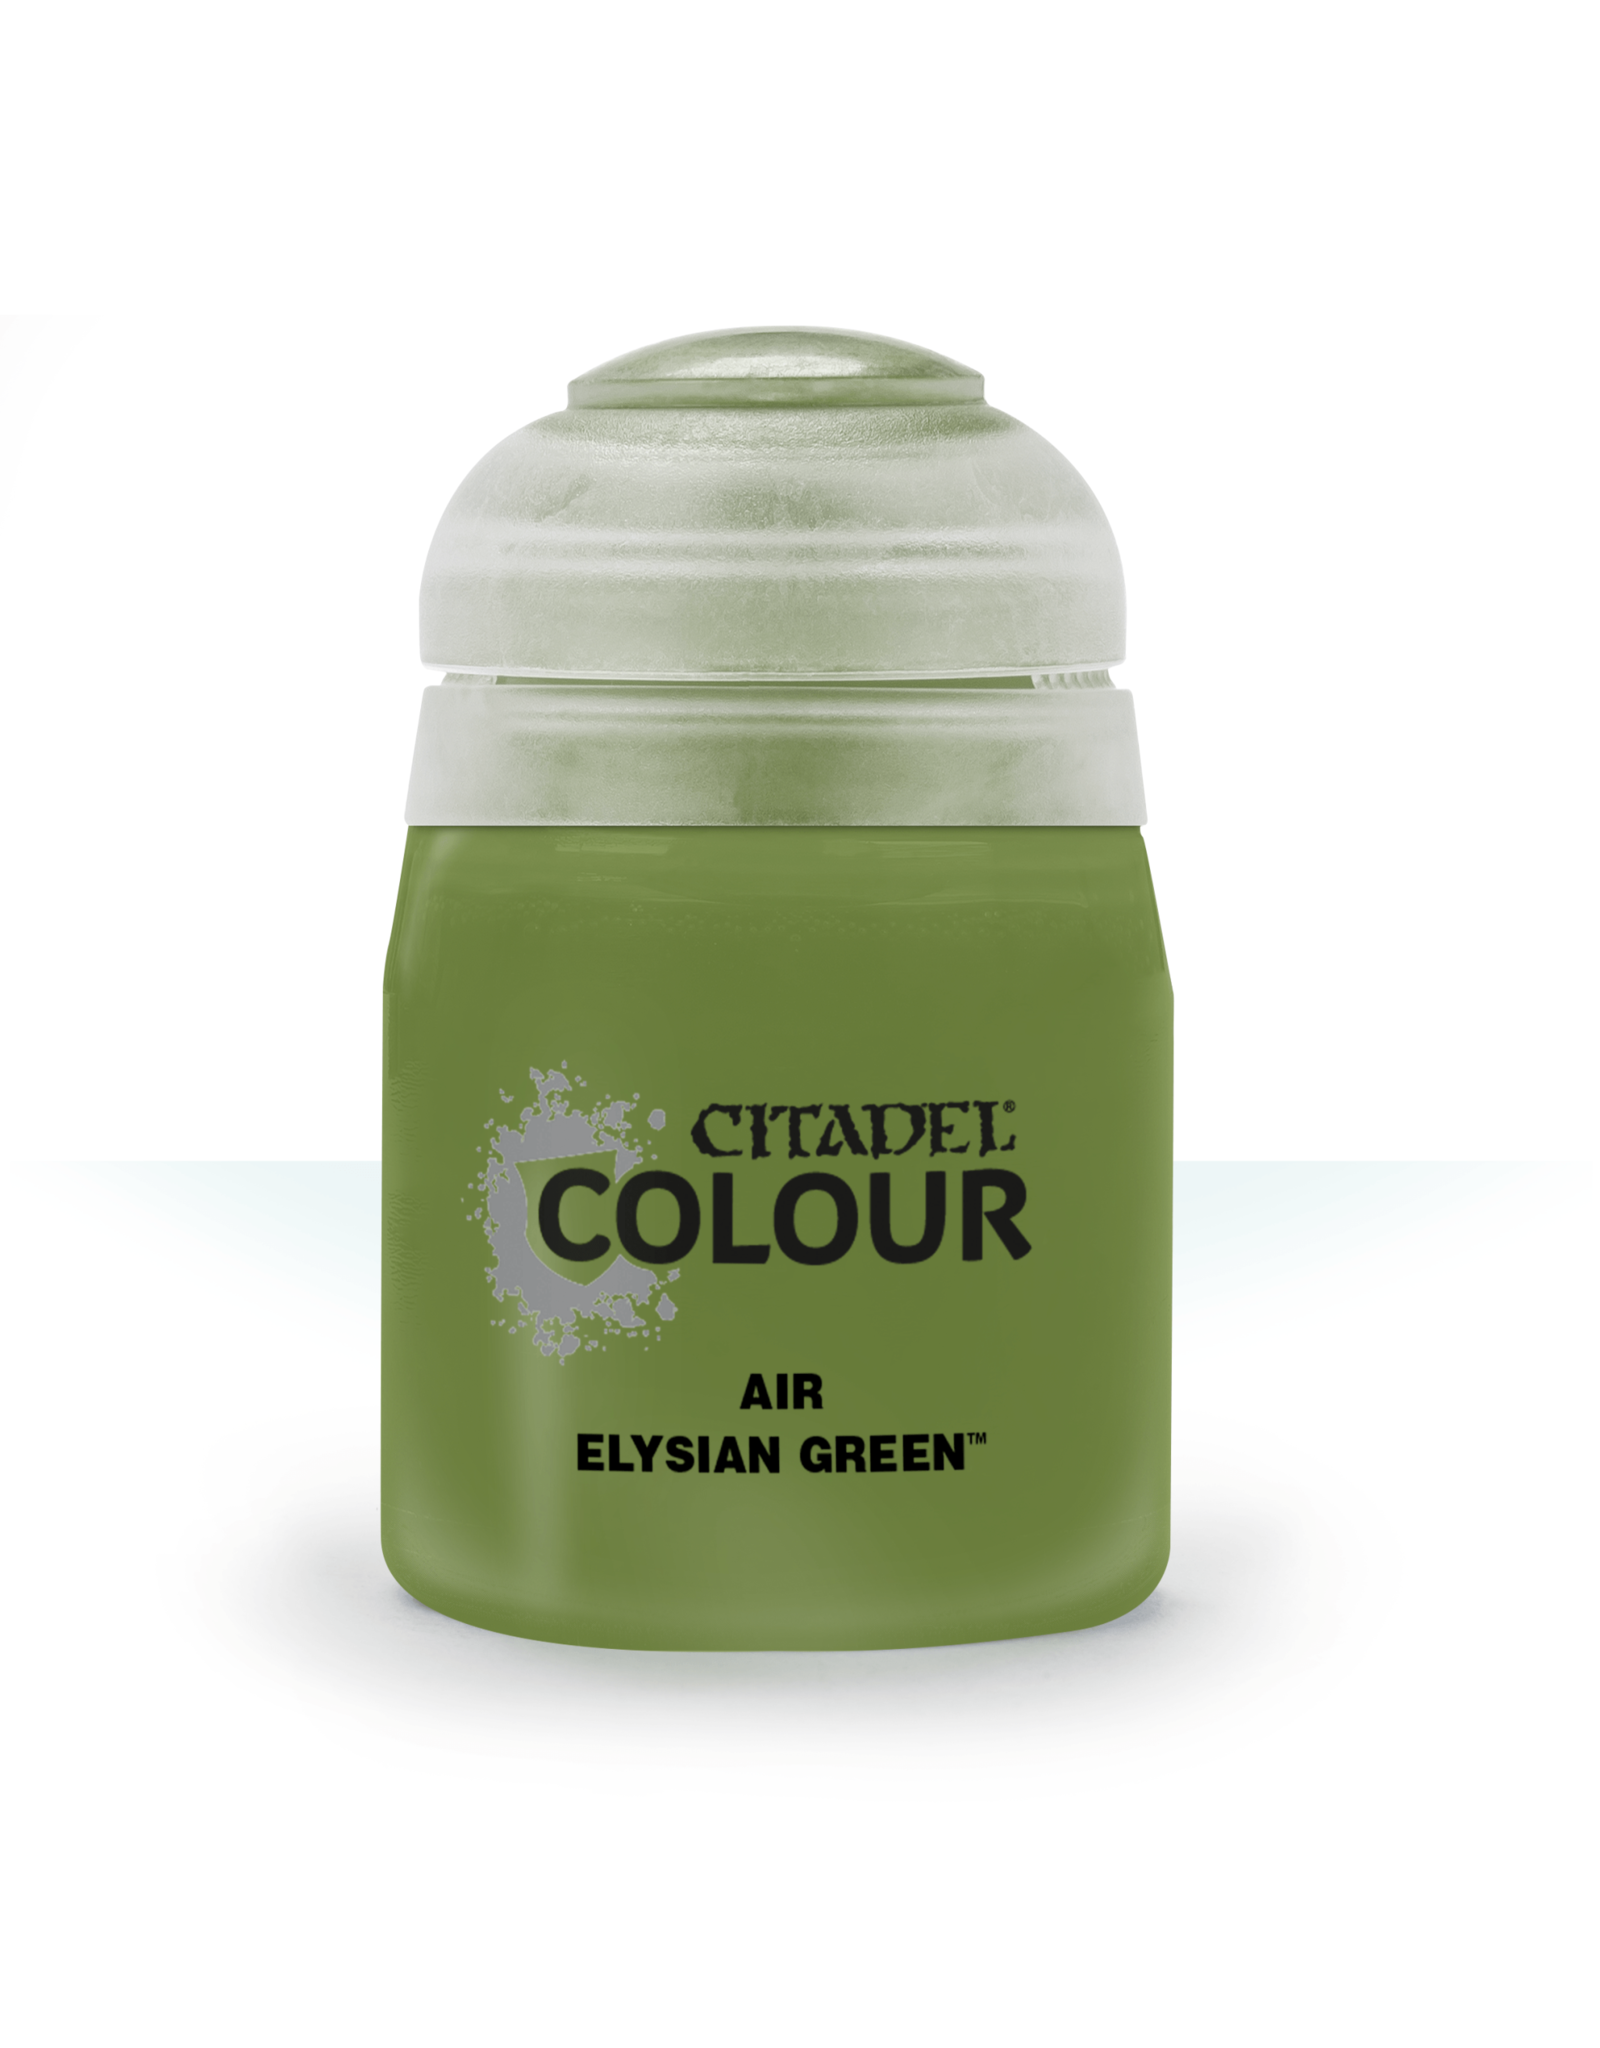 Citadel Citadel Paints Air Paint Elysian Green